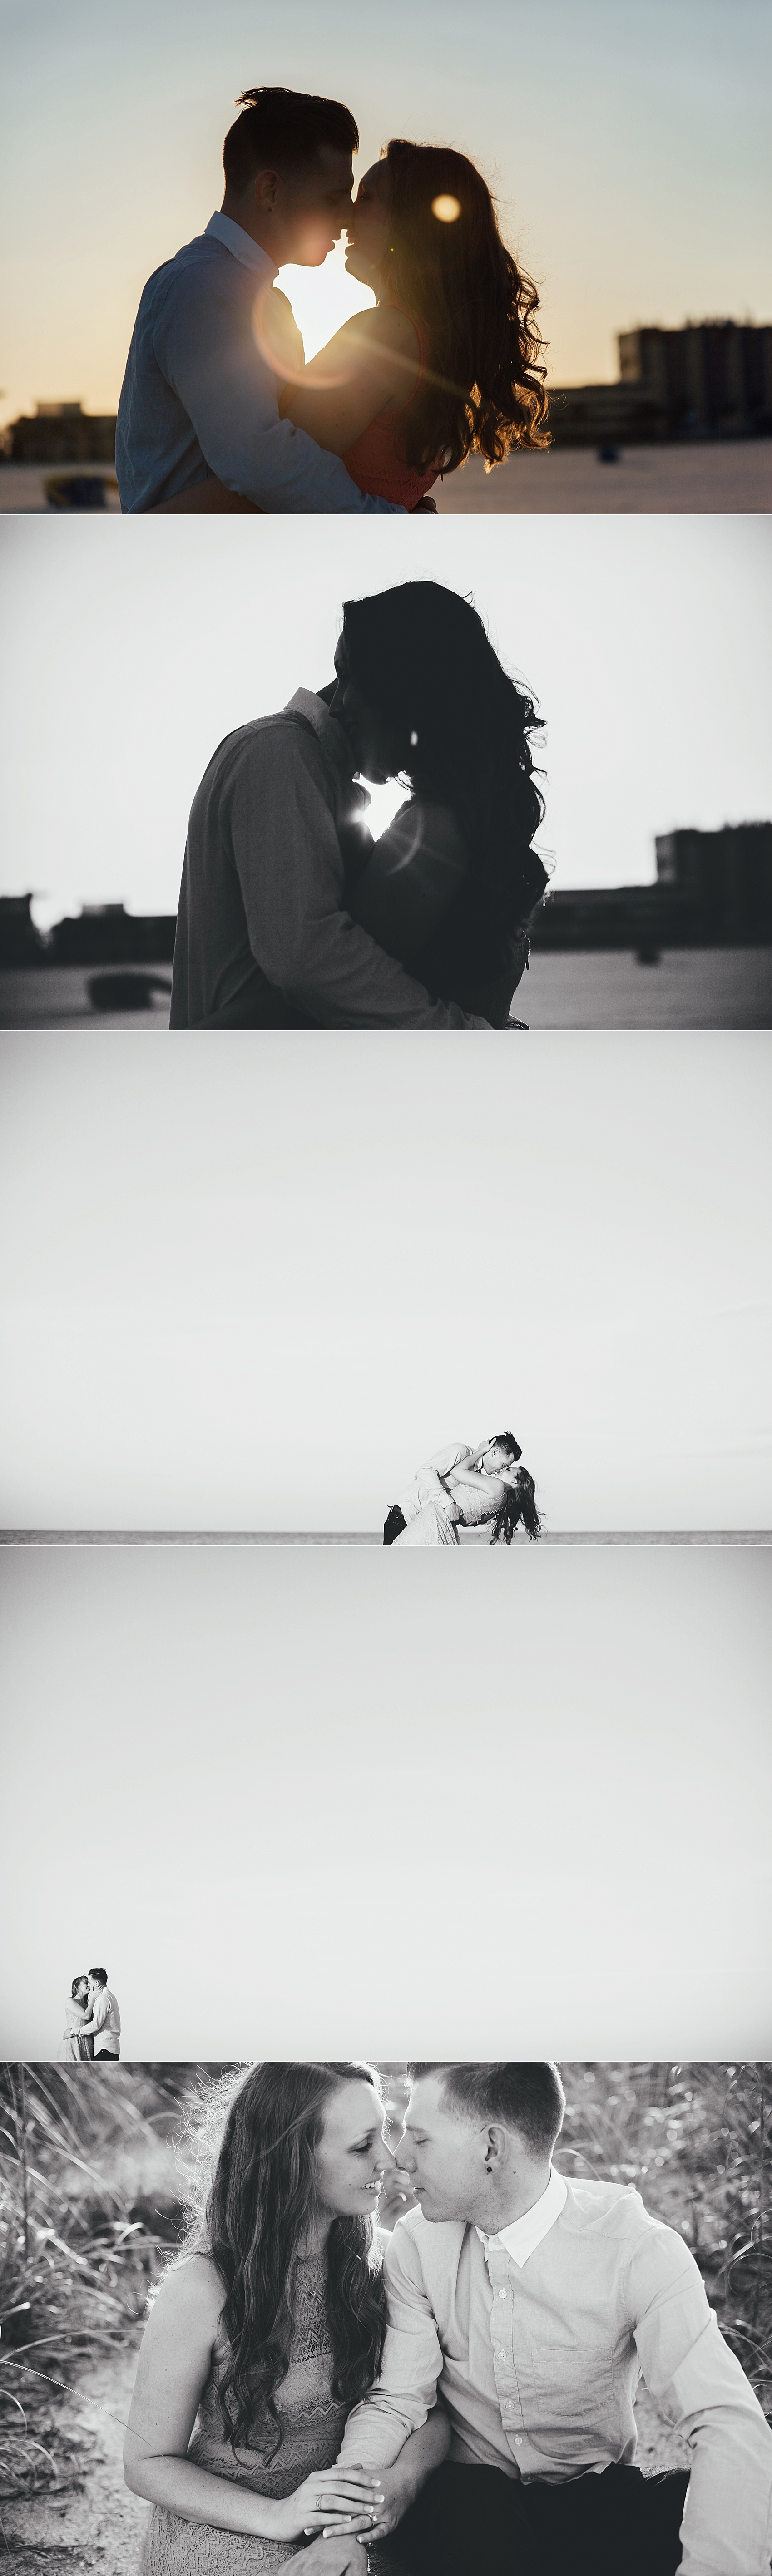 jake-and-katie-engagement-photos-27